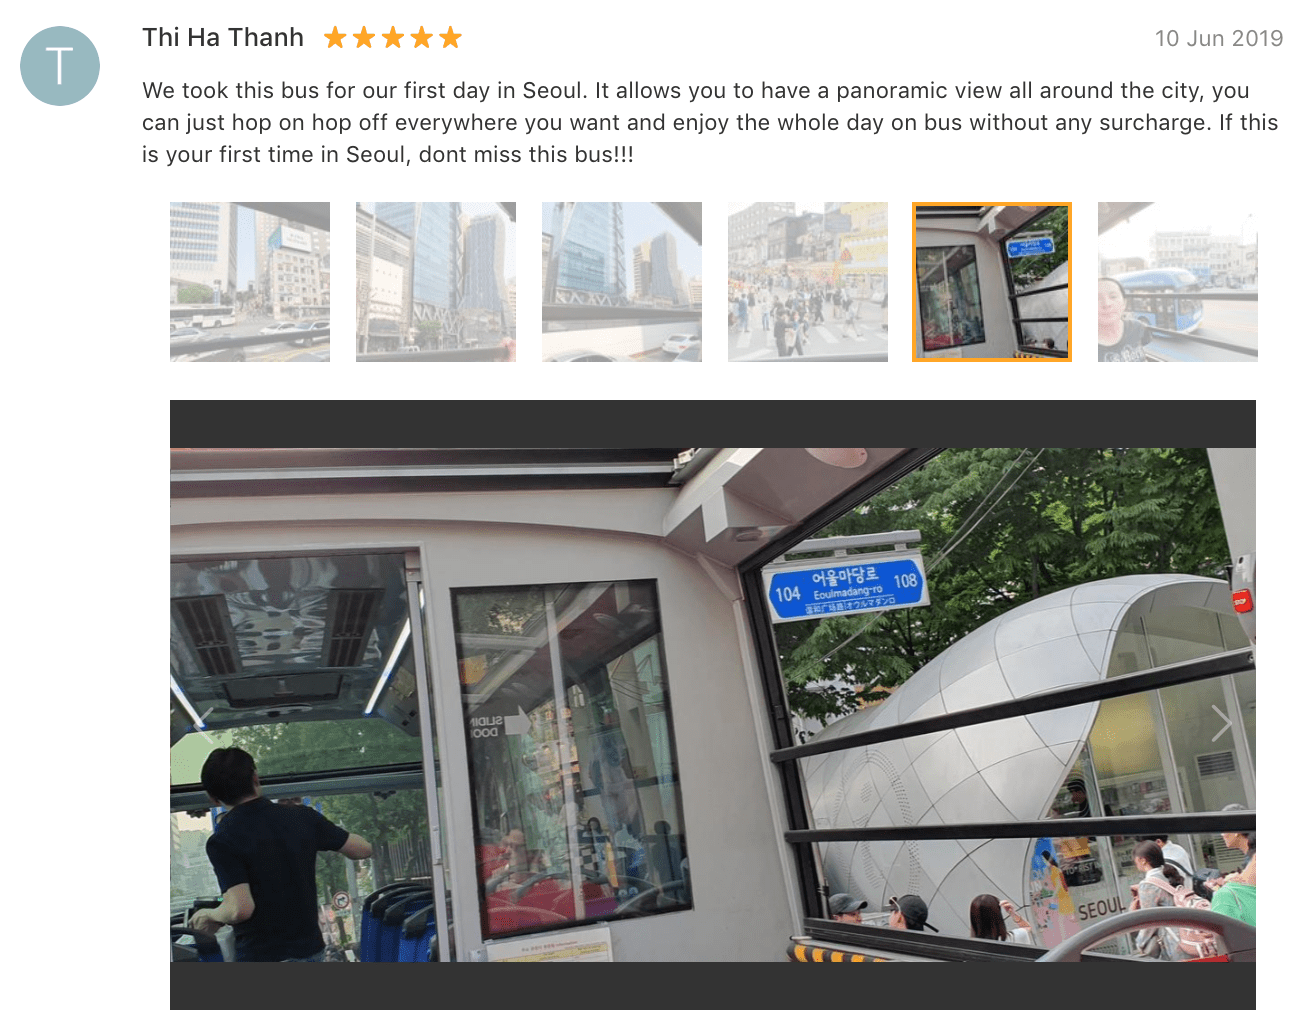 'We took this bus for our first day in Seoul. It allows you to have a panoramic view all around the city, you can just hop on hop off everywhere you want and enjoy the whole day on bus without any surcharge. If this is your first time in Seoul, don't miss this bus!!!' - Seoul tour bus: Review